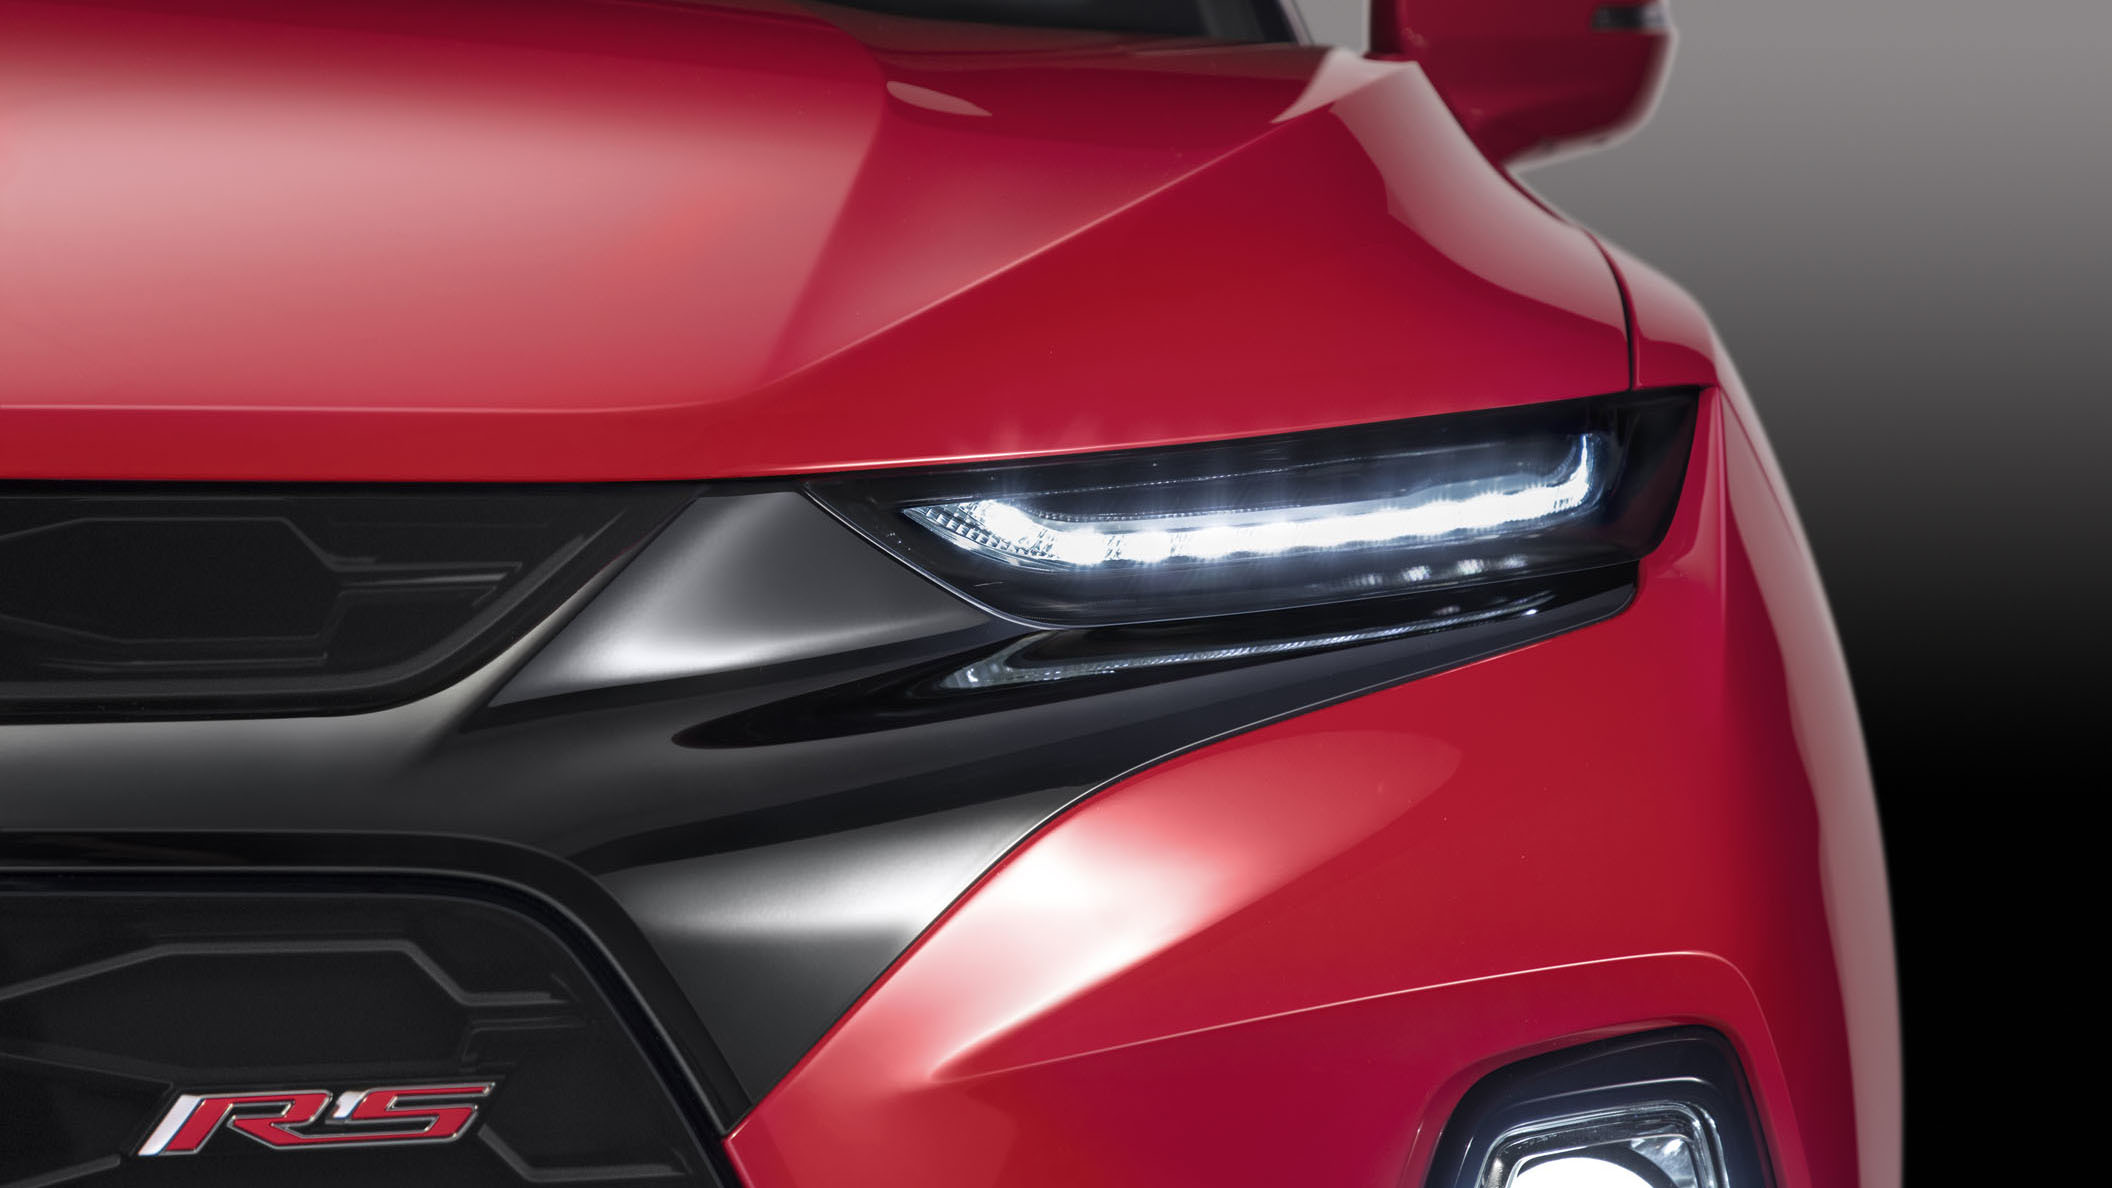 2019 Chevrolet Blazer features a distinctive lighting execution on all models that separates the headlamps and LED daytime running lamps.